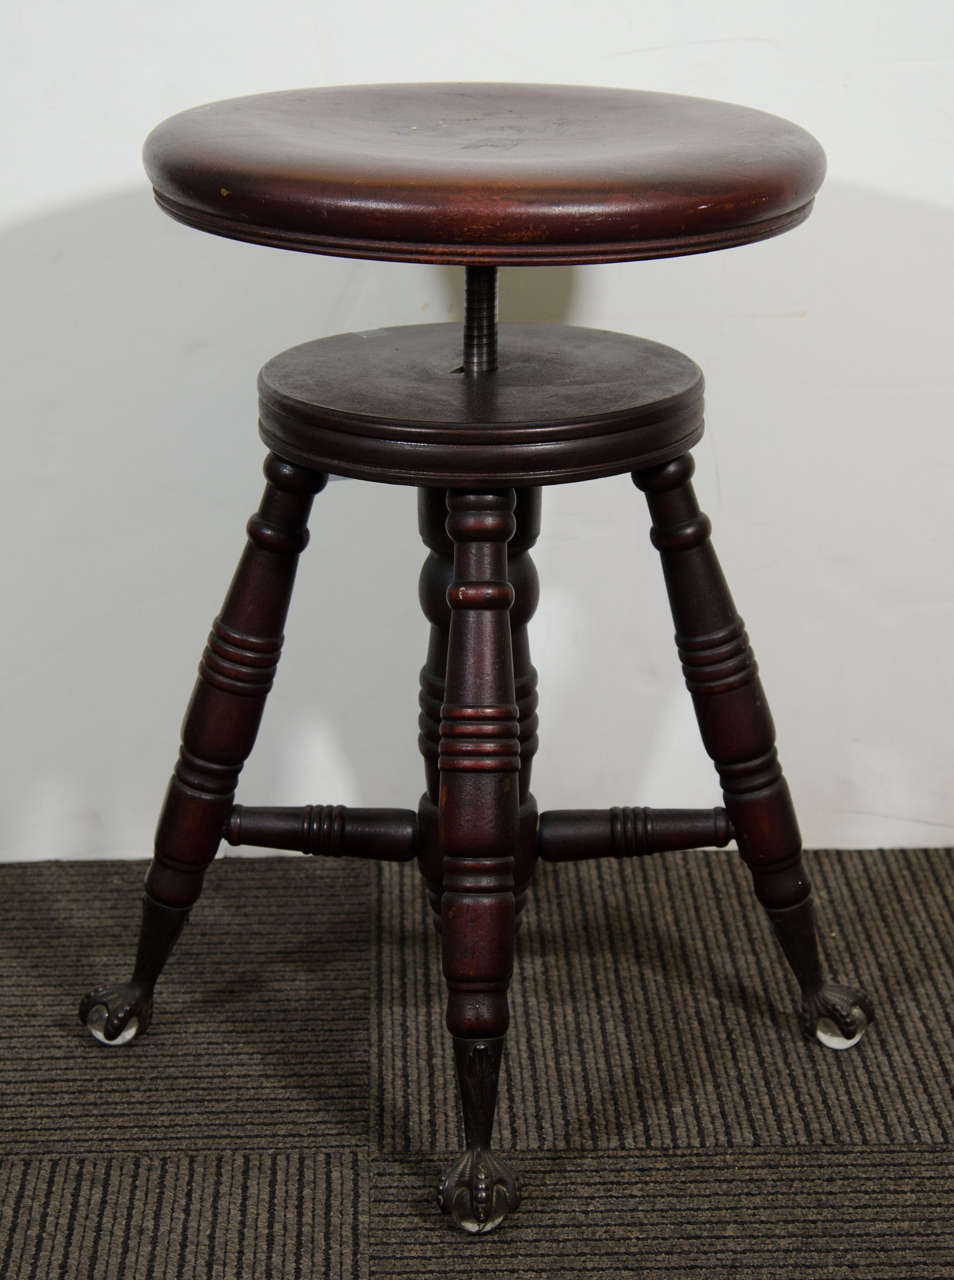 Antique Mahogany Turned Wood Adjustable Piano Stool 3 & Antique Mahogany Turned Wood Adjustable Piano Stool at 1stdibs islam-shia.org